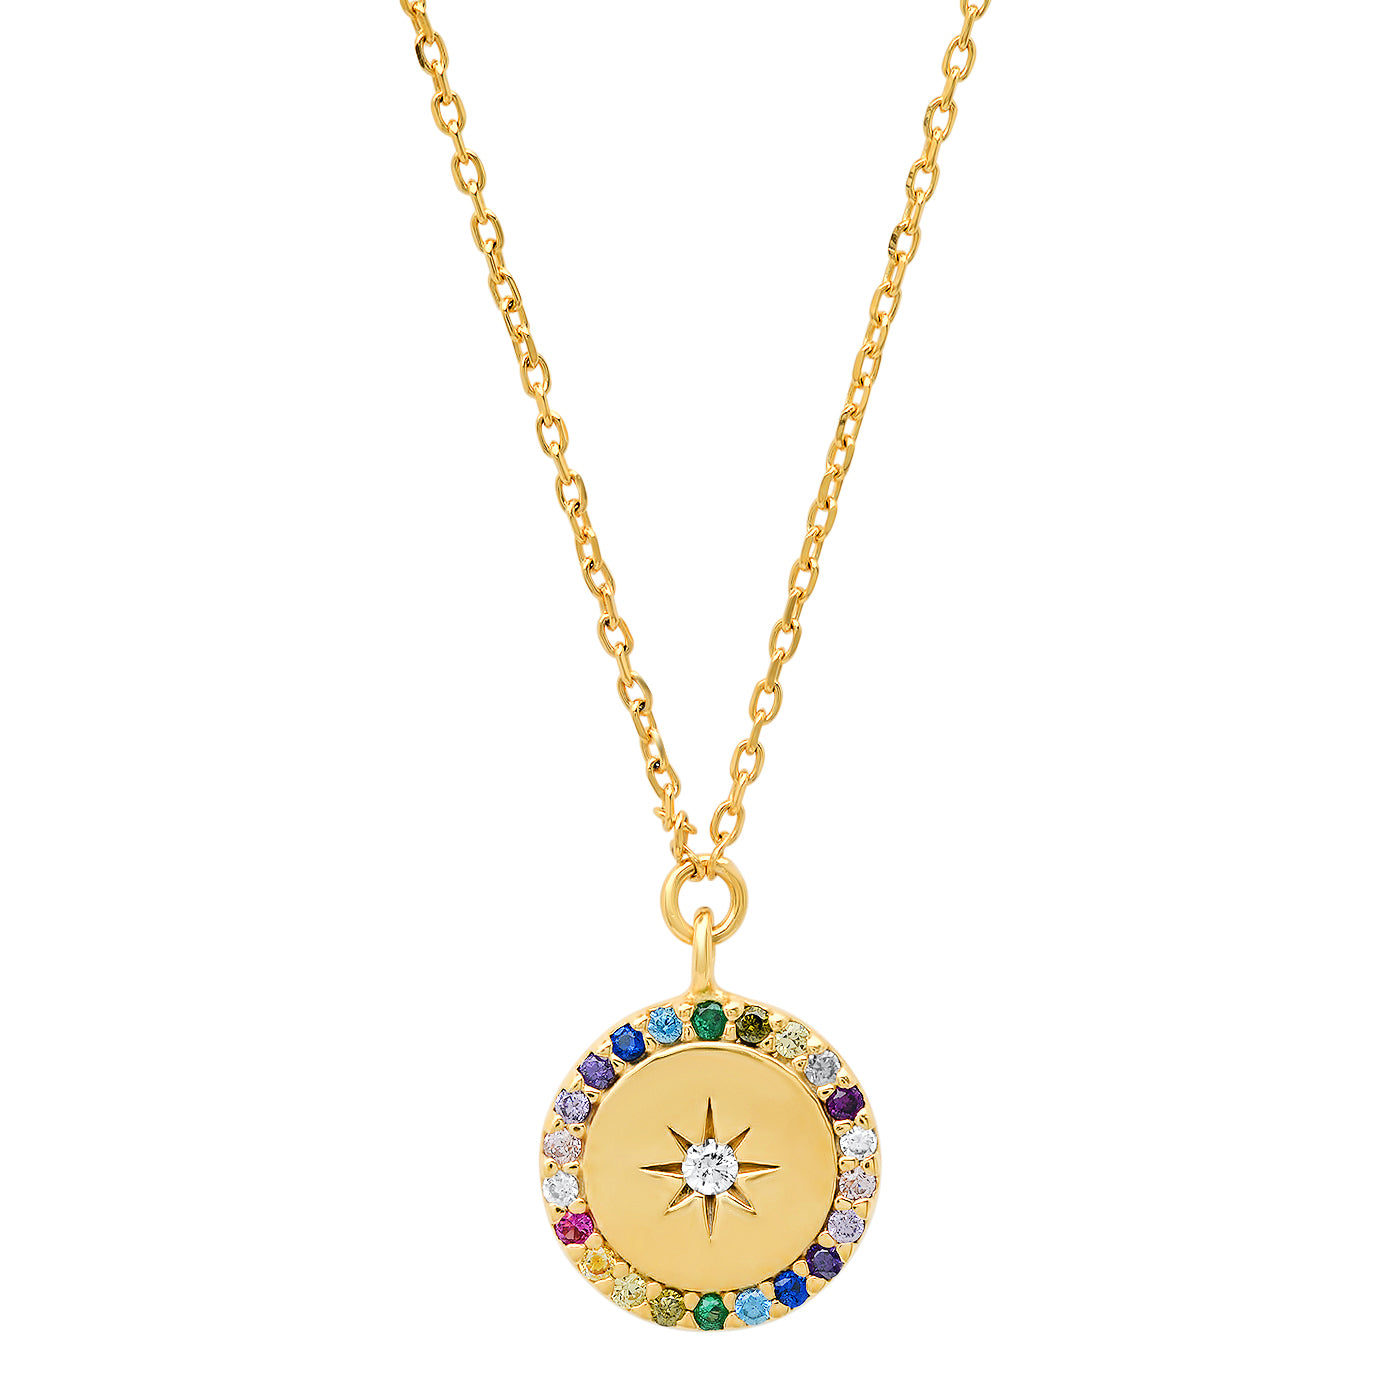 Rainbow Pendant With Star Center